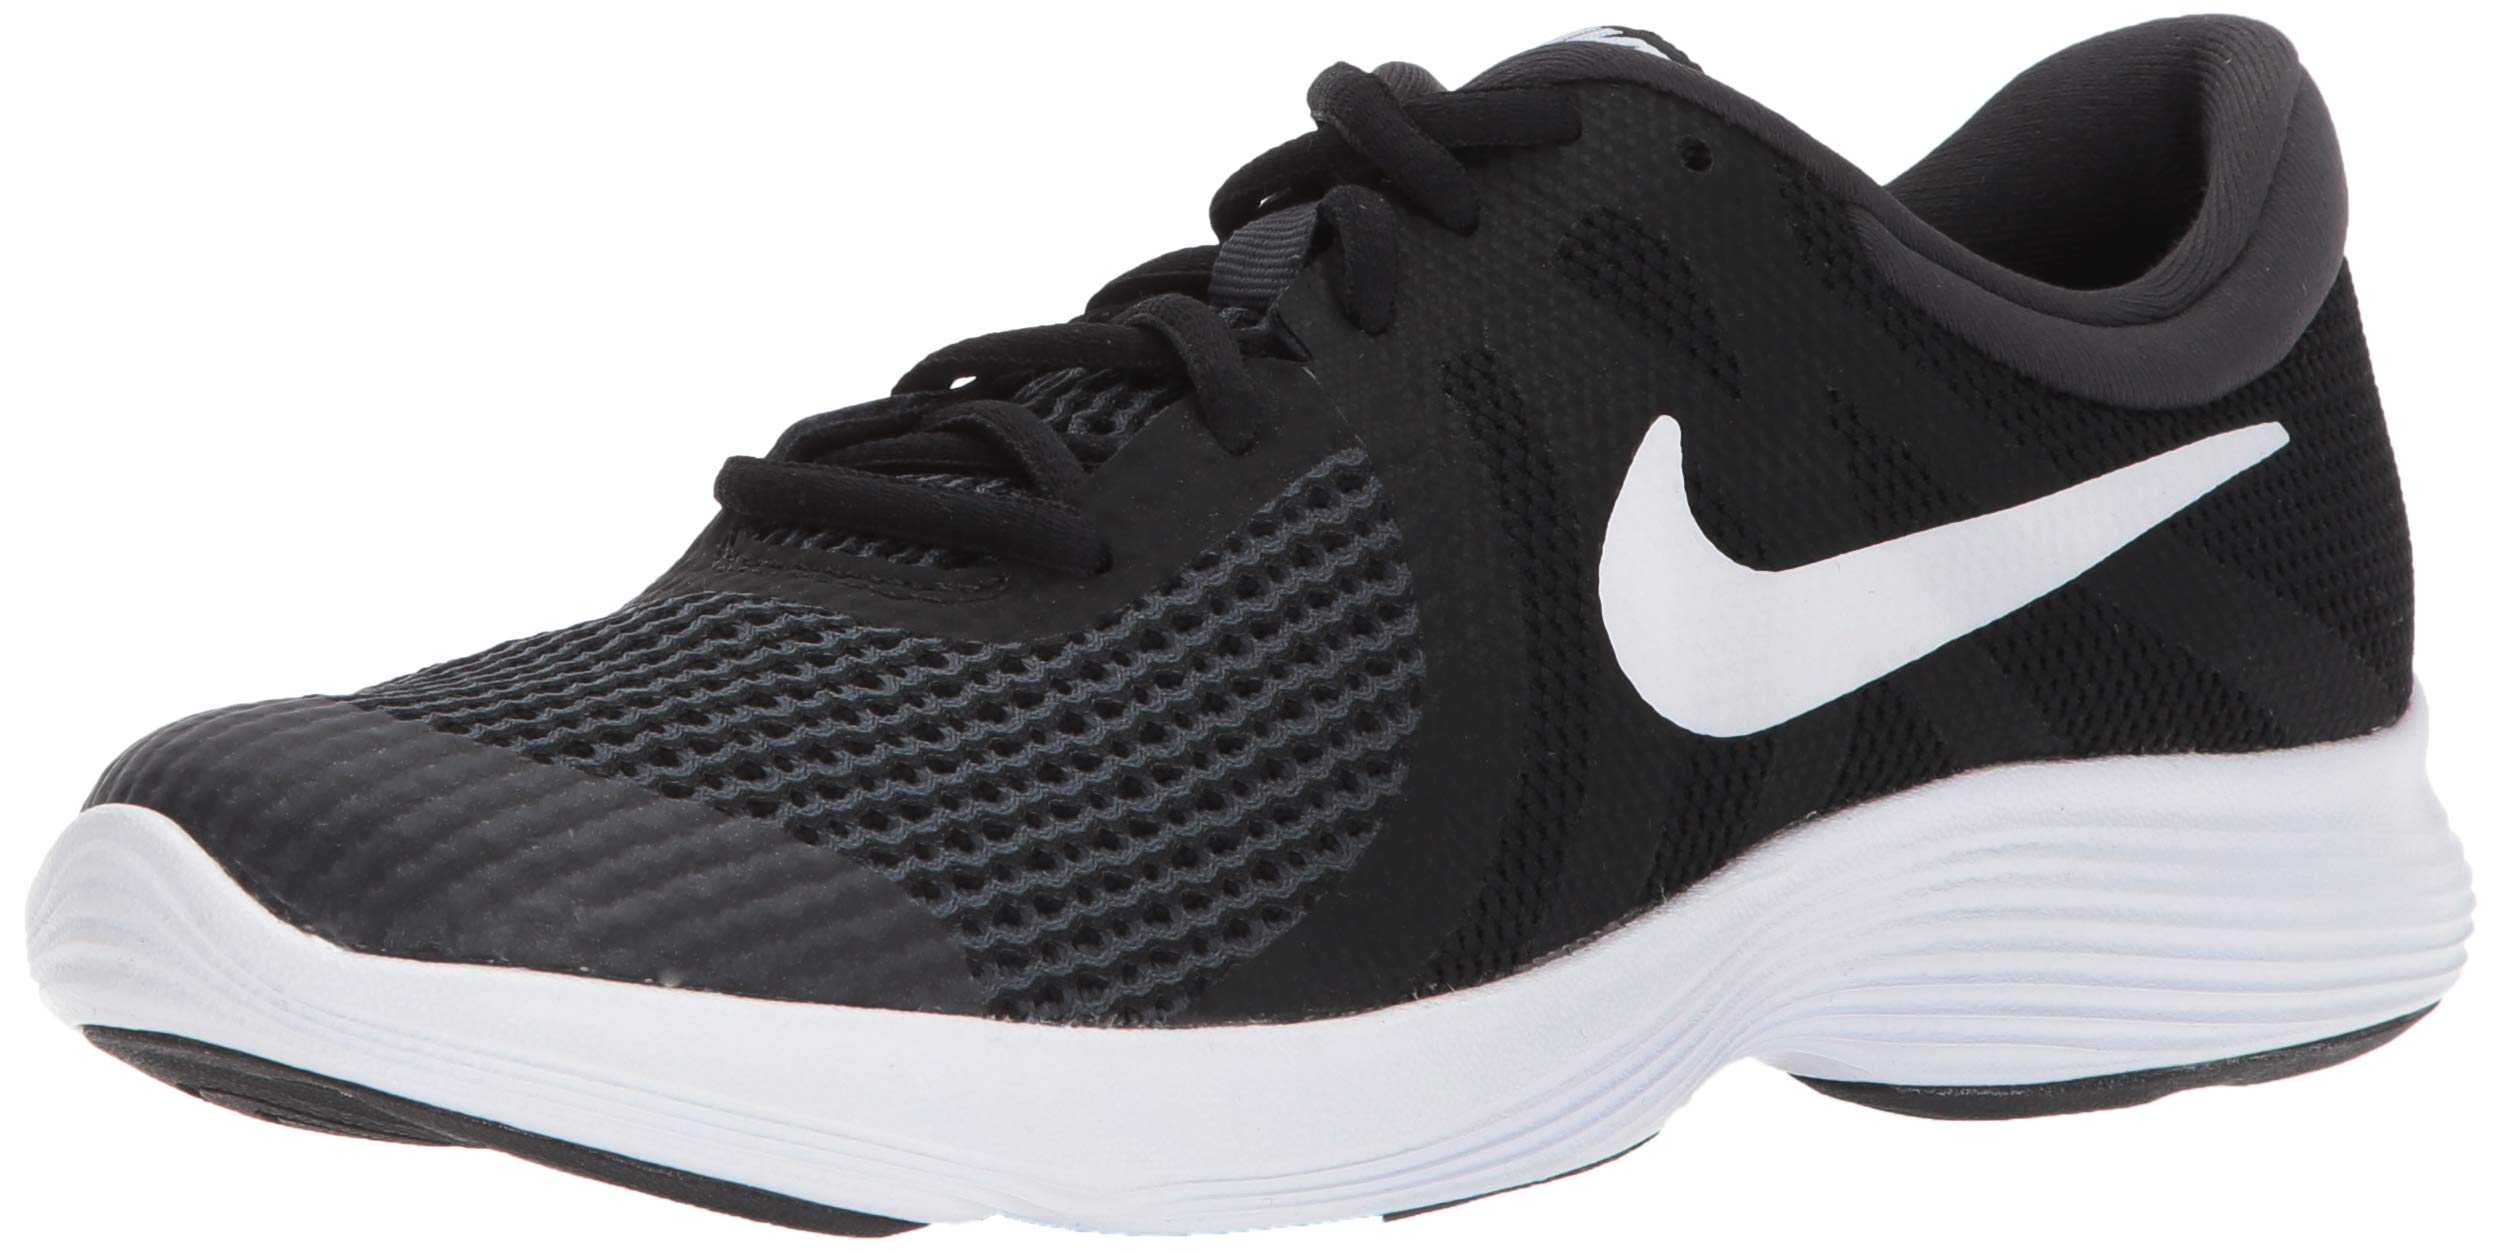 Nike Boys' Revolution 4 (GS) Running Shoe, Black/White-Anthracite, 7Y Youth US Big Kid by Nike